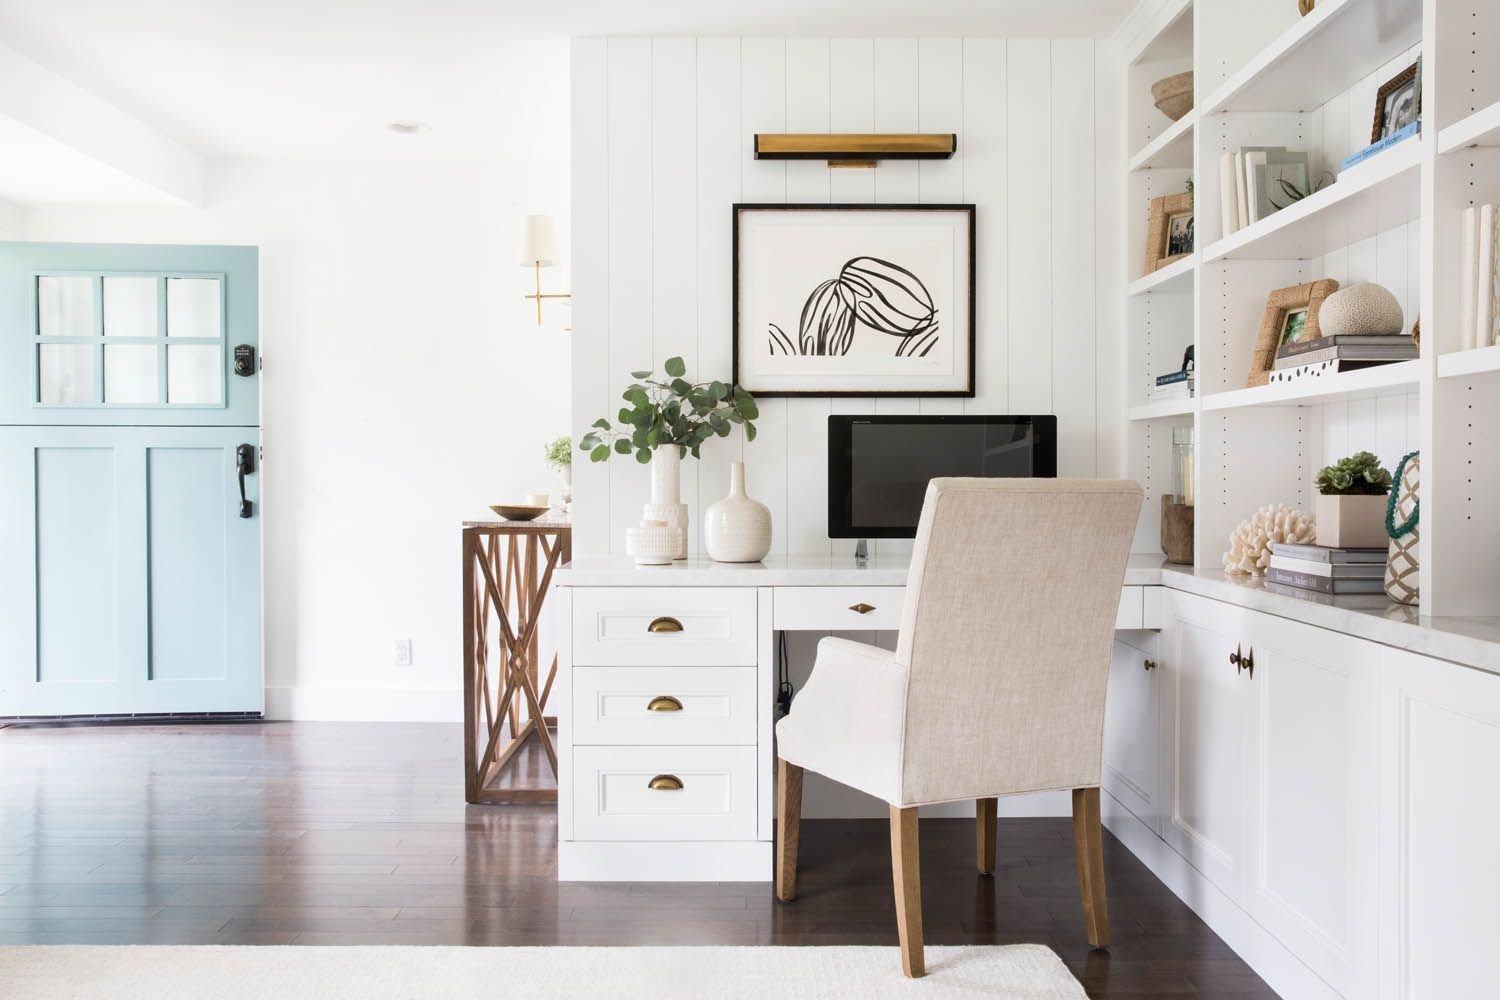 Home office interior a clean coastal home in costa mesa ca  rue  work spaces